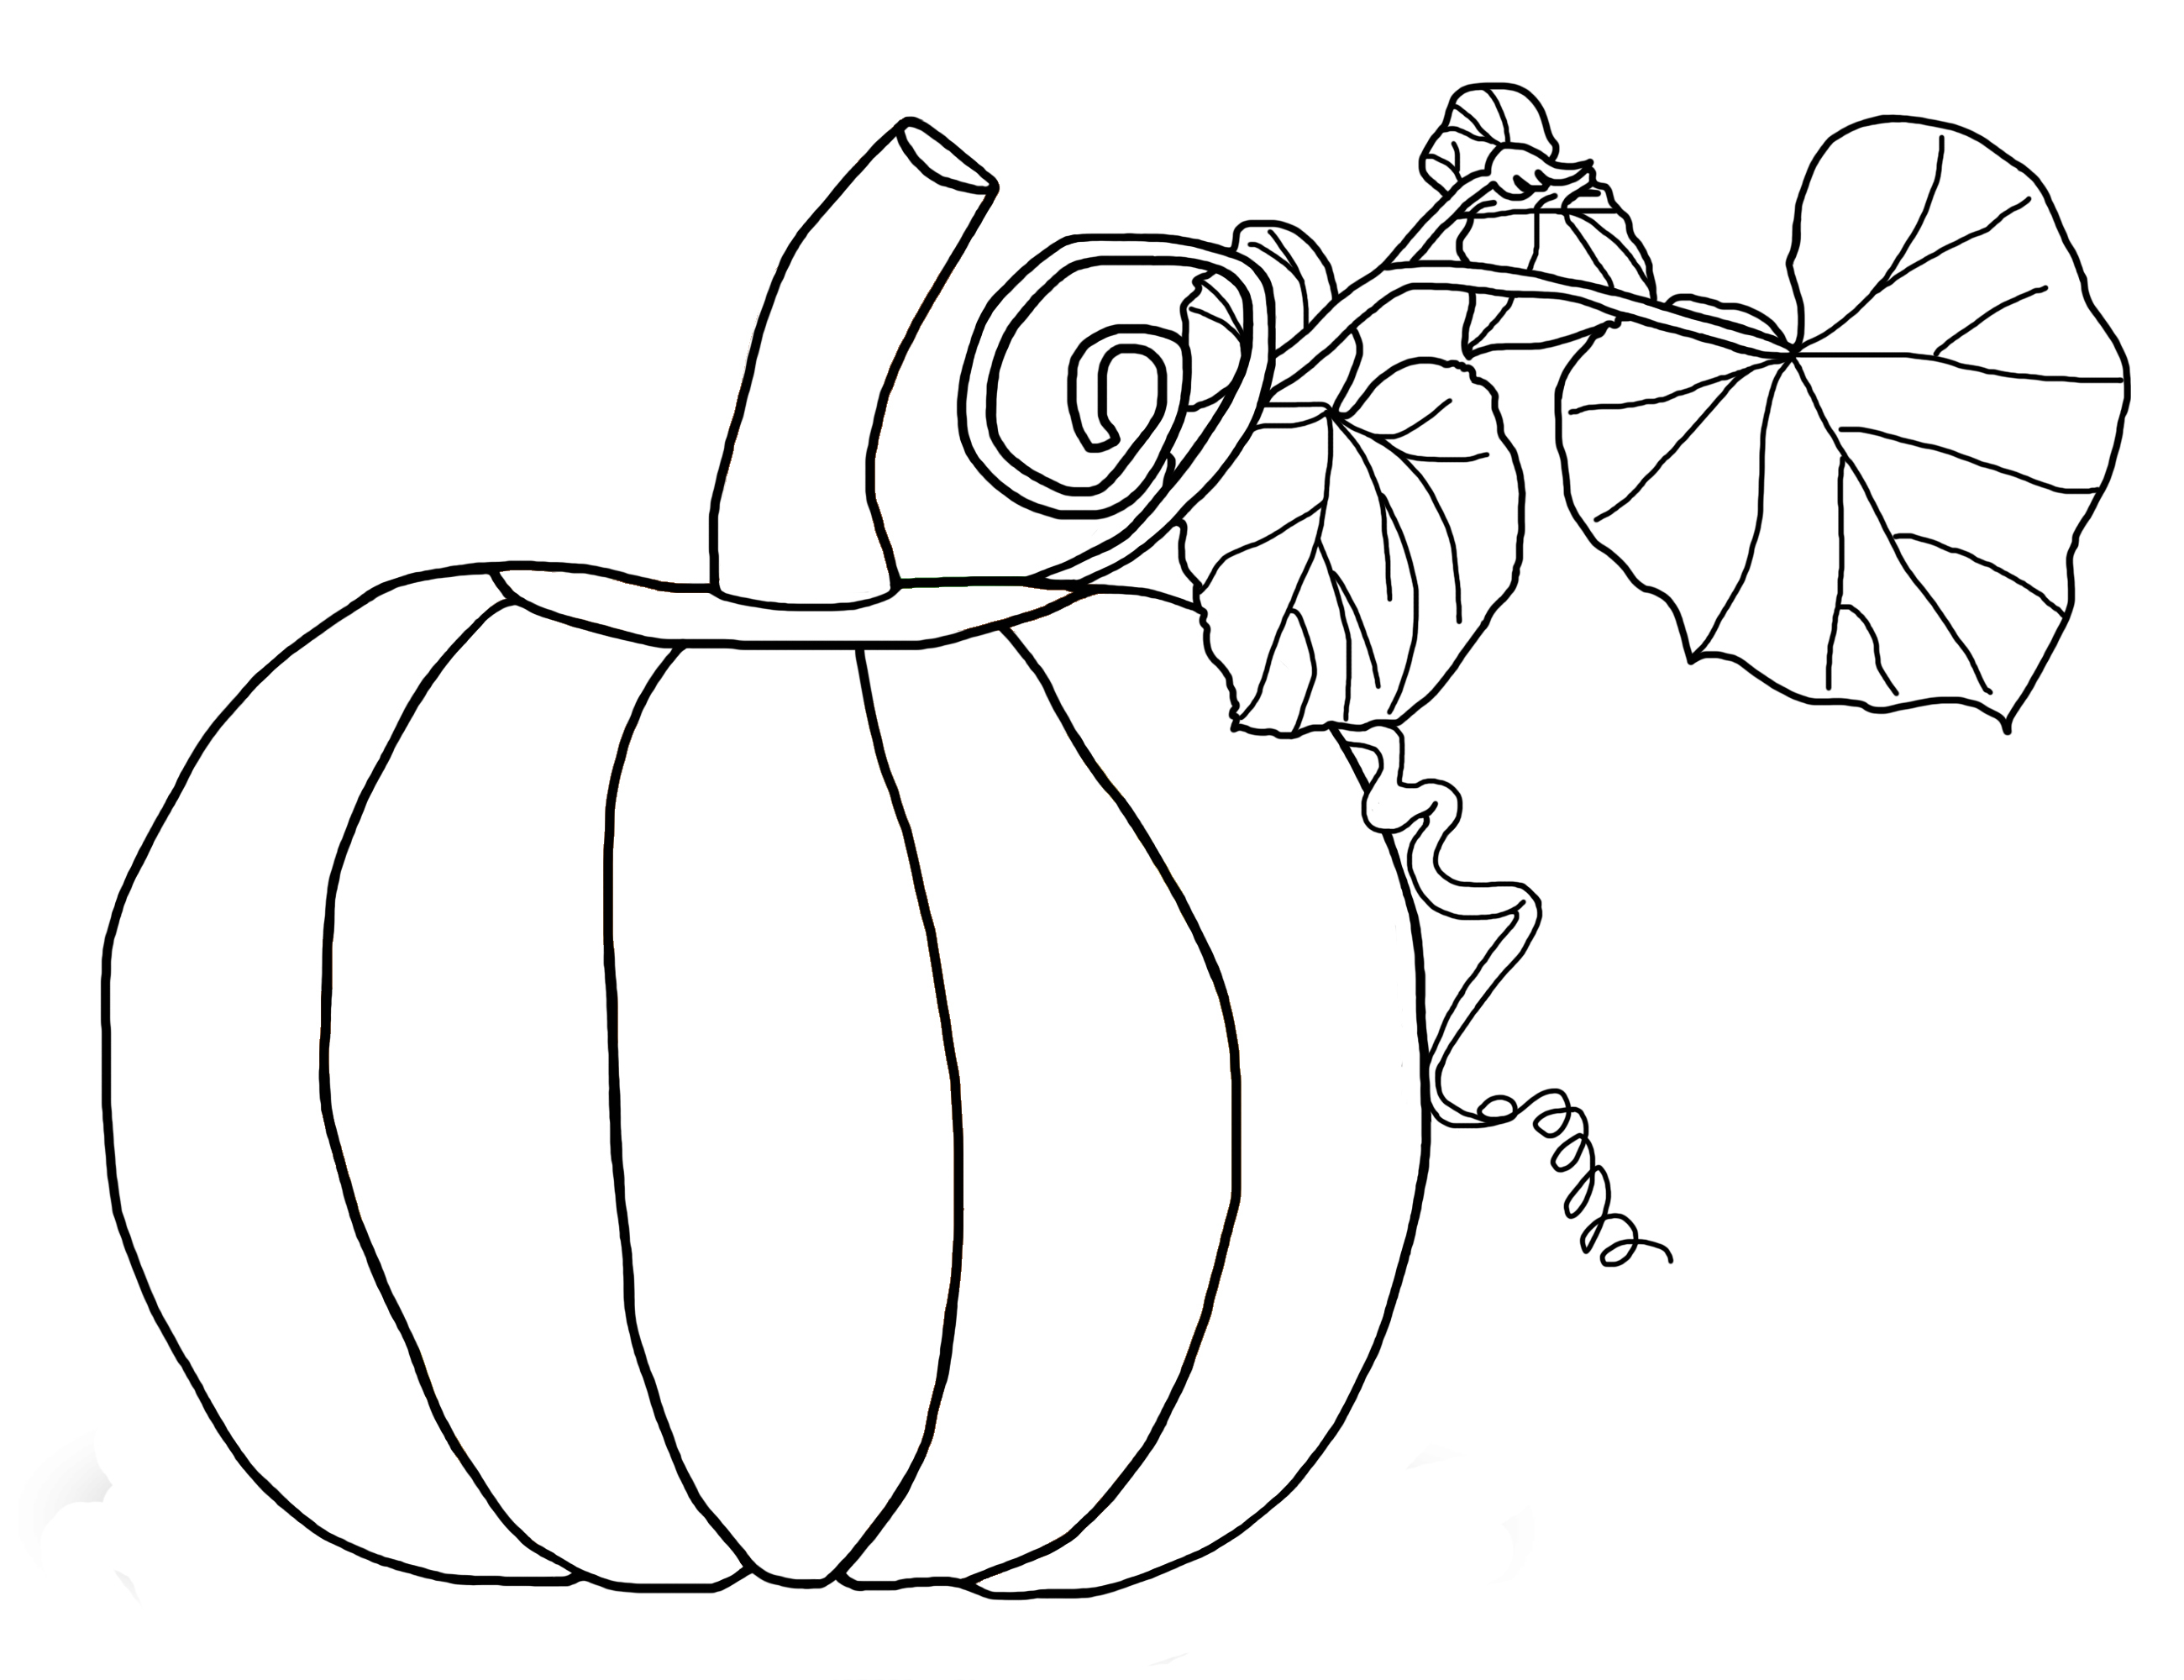 Uncategorized Pumpkin Pictures To Print free printable pumpkin coloring pages for kids page pumpkin